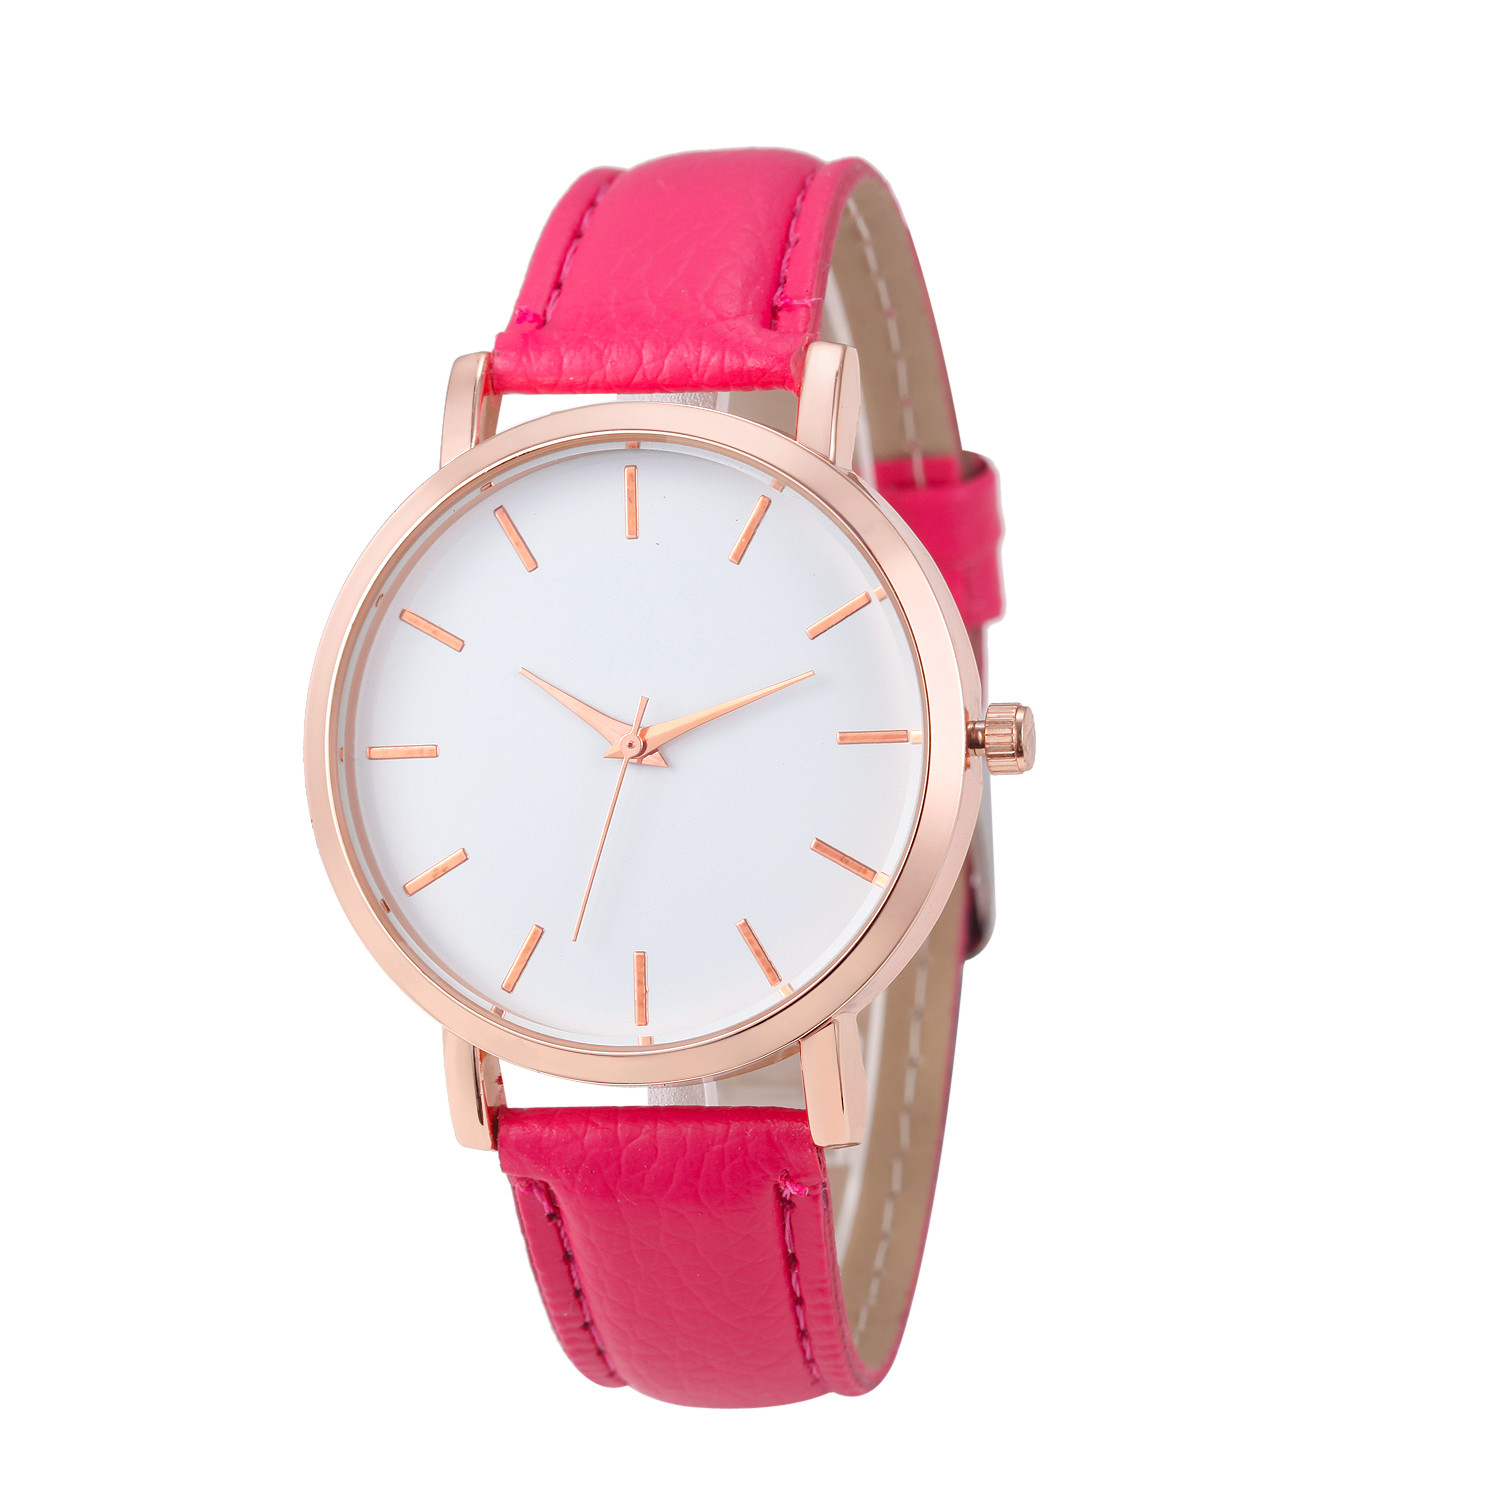 Fashion Lady Watch with Fuchsia Leather Strap